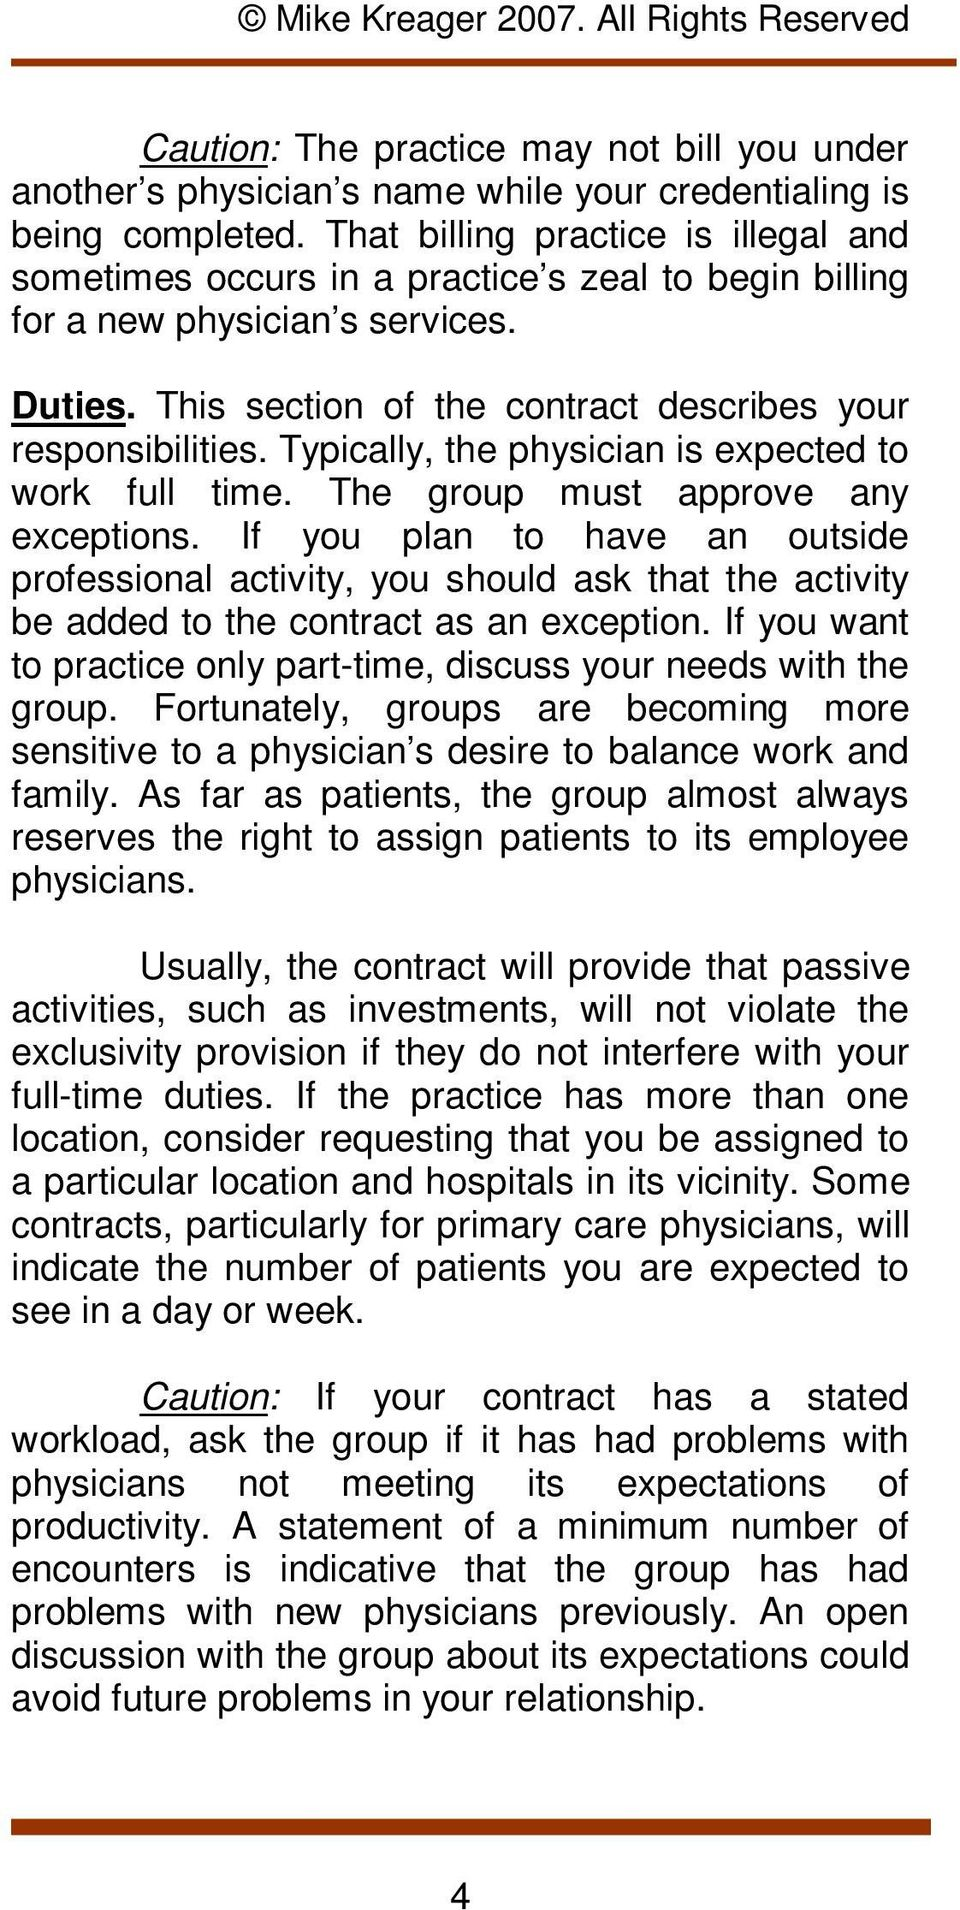 Typically, the physician is expected to work full time. The group must approve any exceptions.